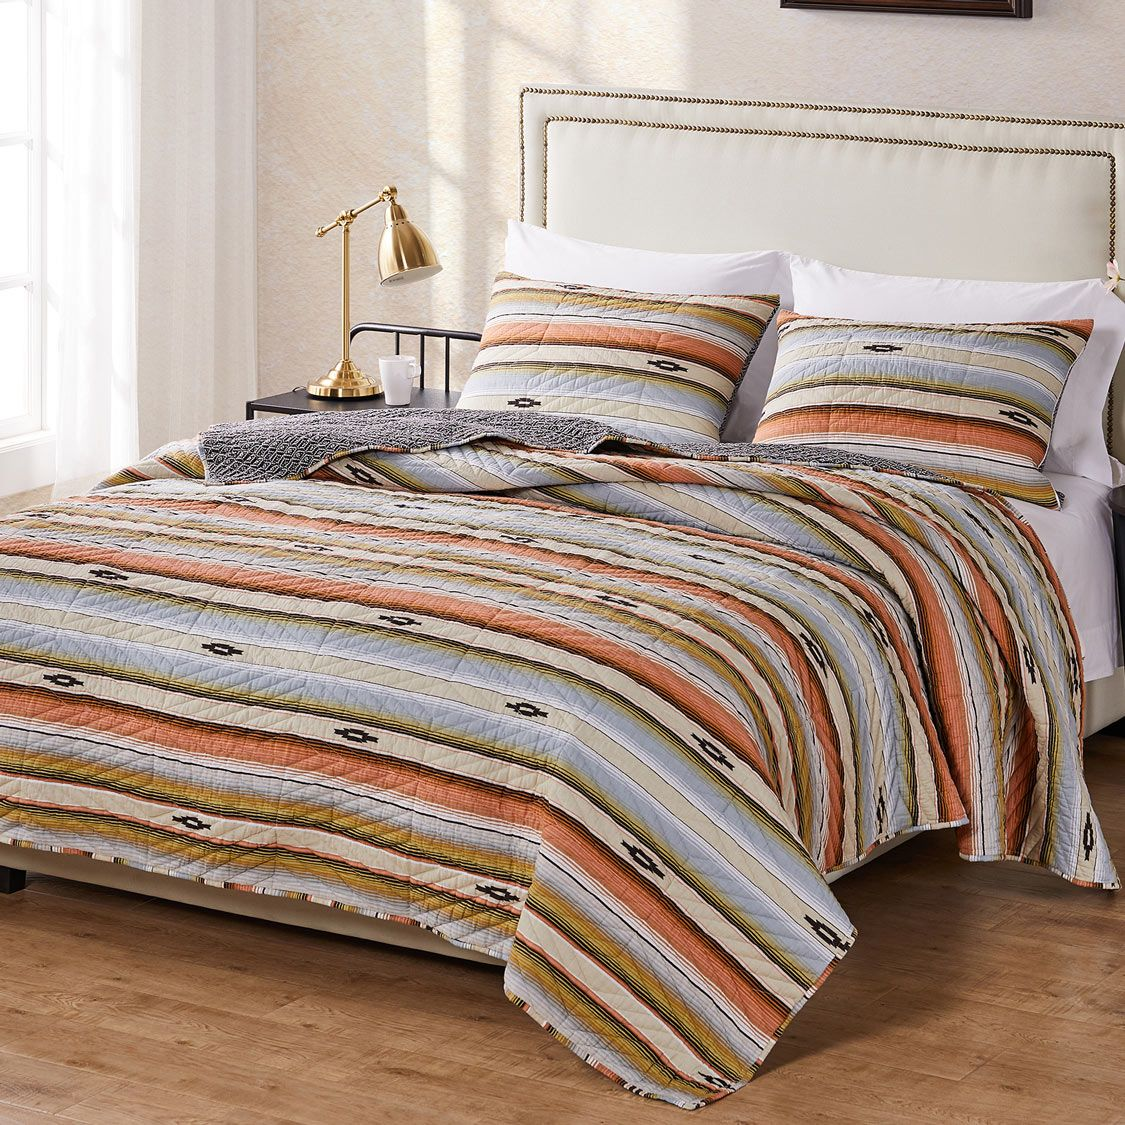 Mesa Sunrise Quilt Set - Twin